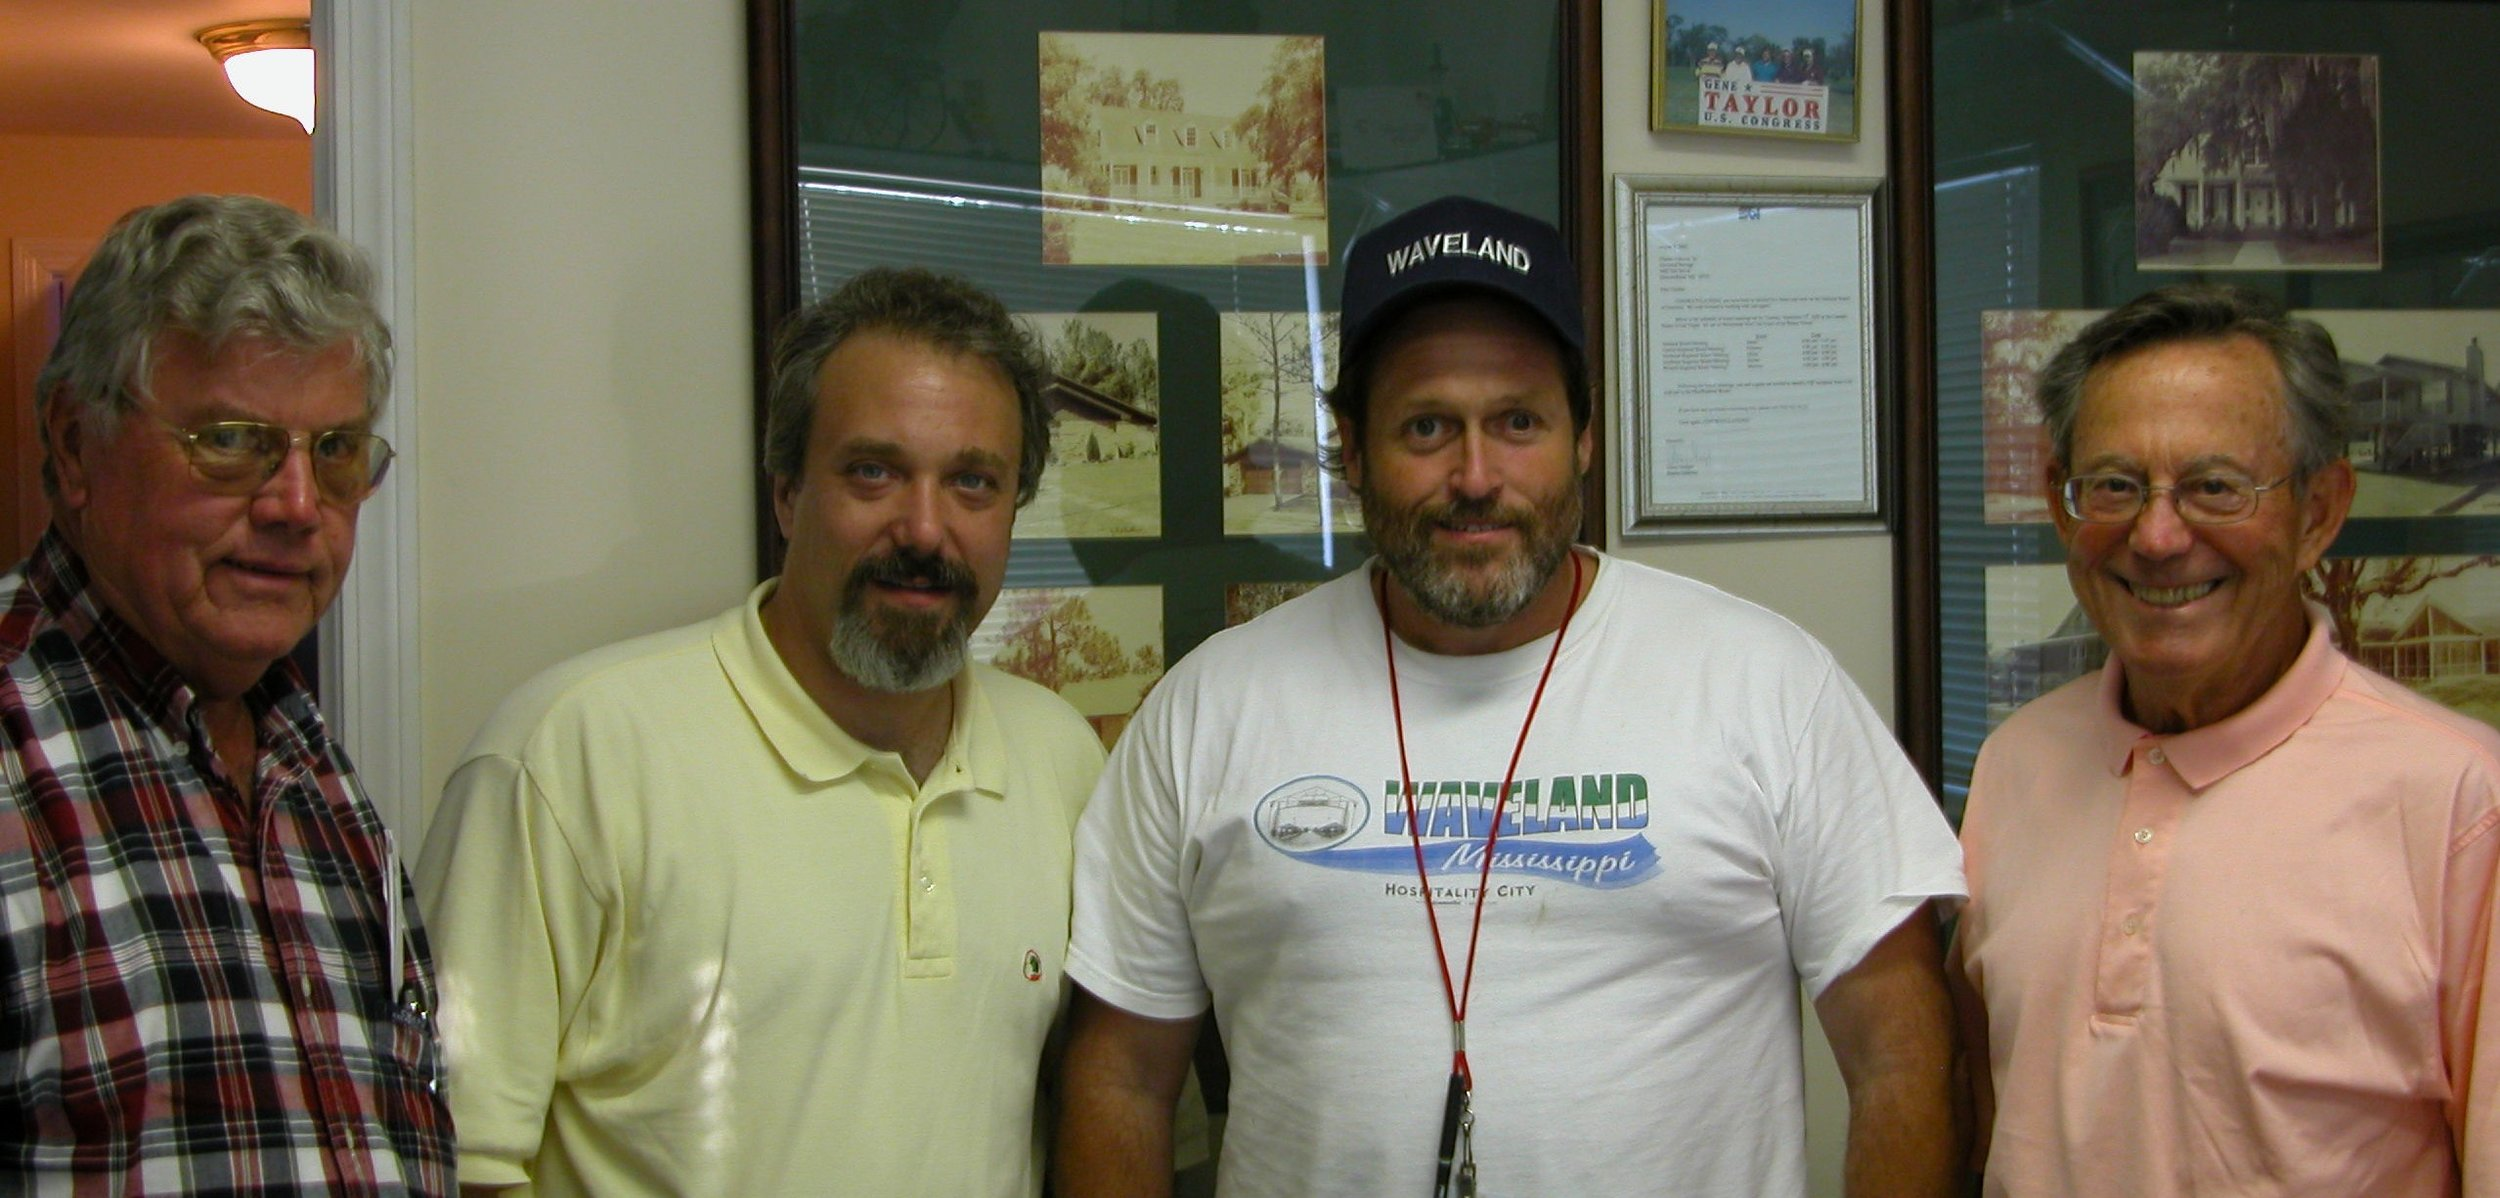 1.In fall of 2005, a team of leaders from Dalton visited the Gulf Coast to determine how the Community Foundation and other Northwest Georgia businesses could assist in the cleanup and recovery after Hurricane Katrina hammered the region. Pictured are: Charlie Johnson, David Aft (President of the Foundation), Tommy Longo (Mayor of the city of Waveland, Mississippi), and Norris Little (Foundation volunteer and Dalton business leader). George Woodward and Richard Fairey made the trip but are not pictured.